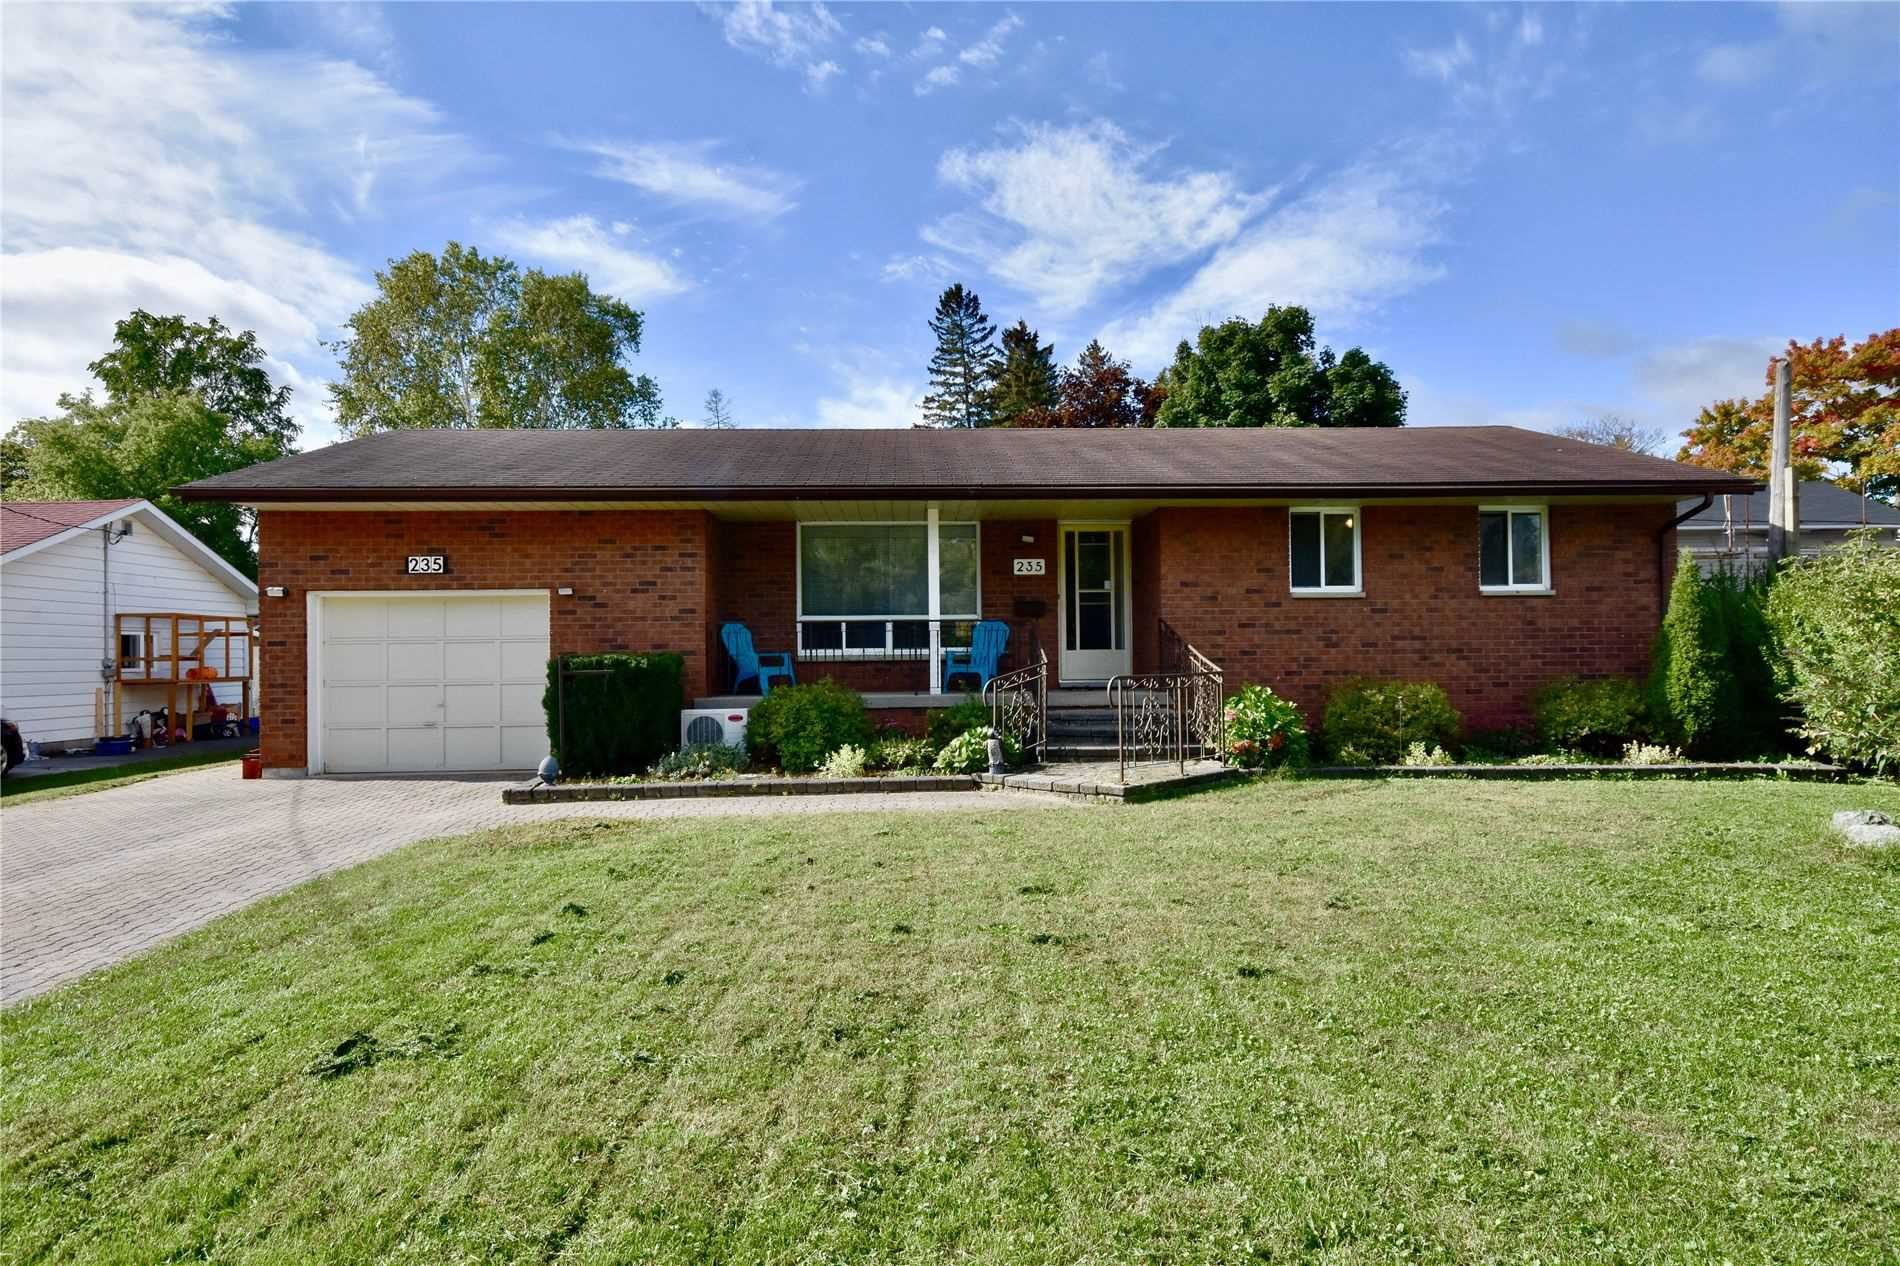 235 Pine St, Clearview, ON L0K 1S0 - MLS#: S5385898